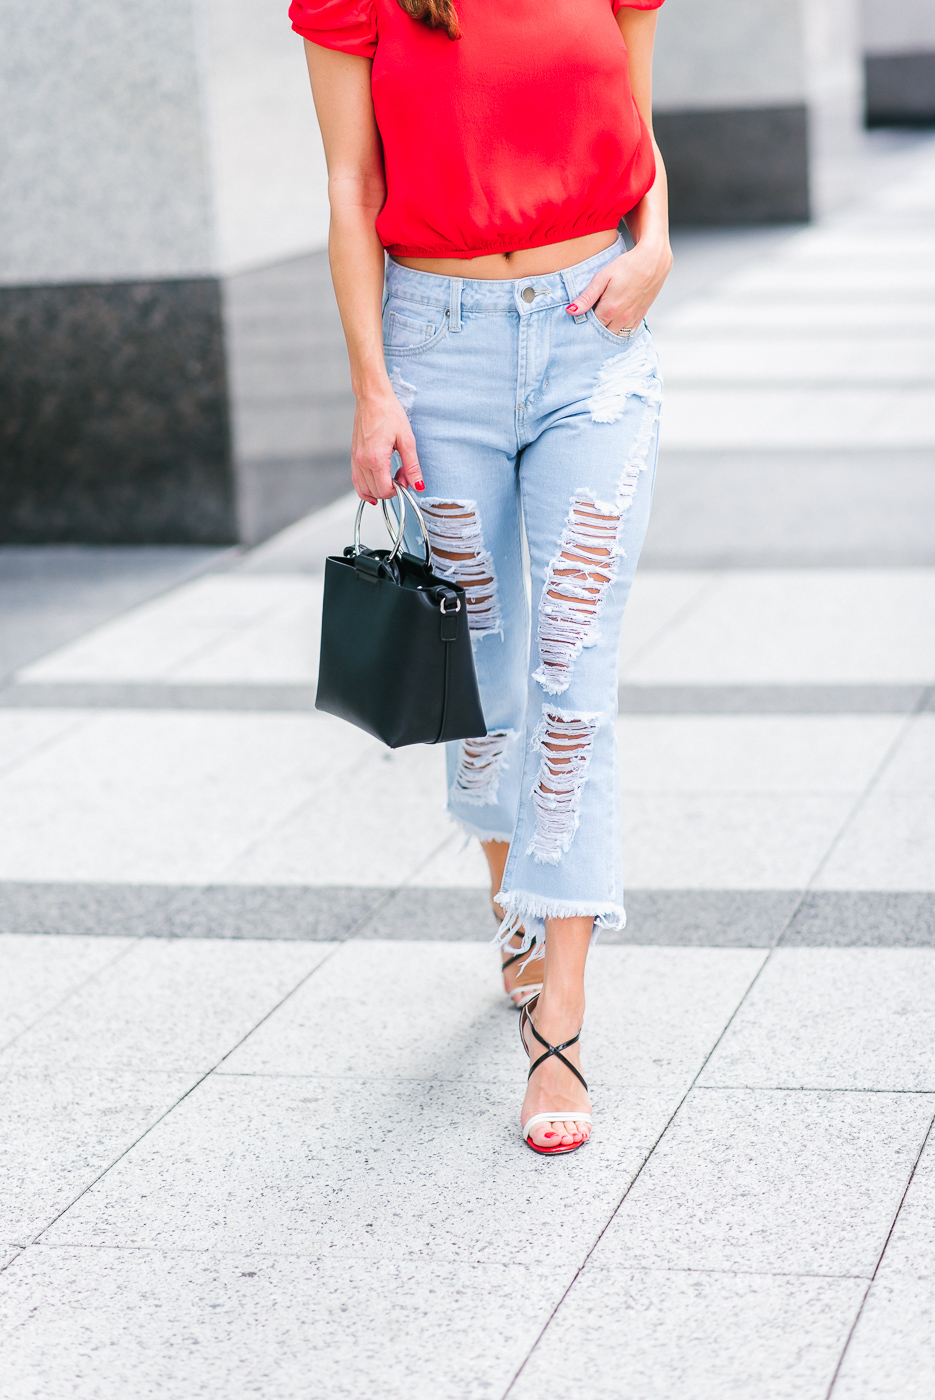 Walking into next week in my mom 80's jeans